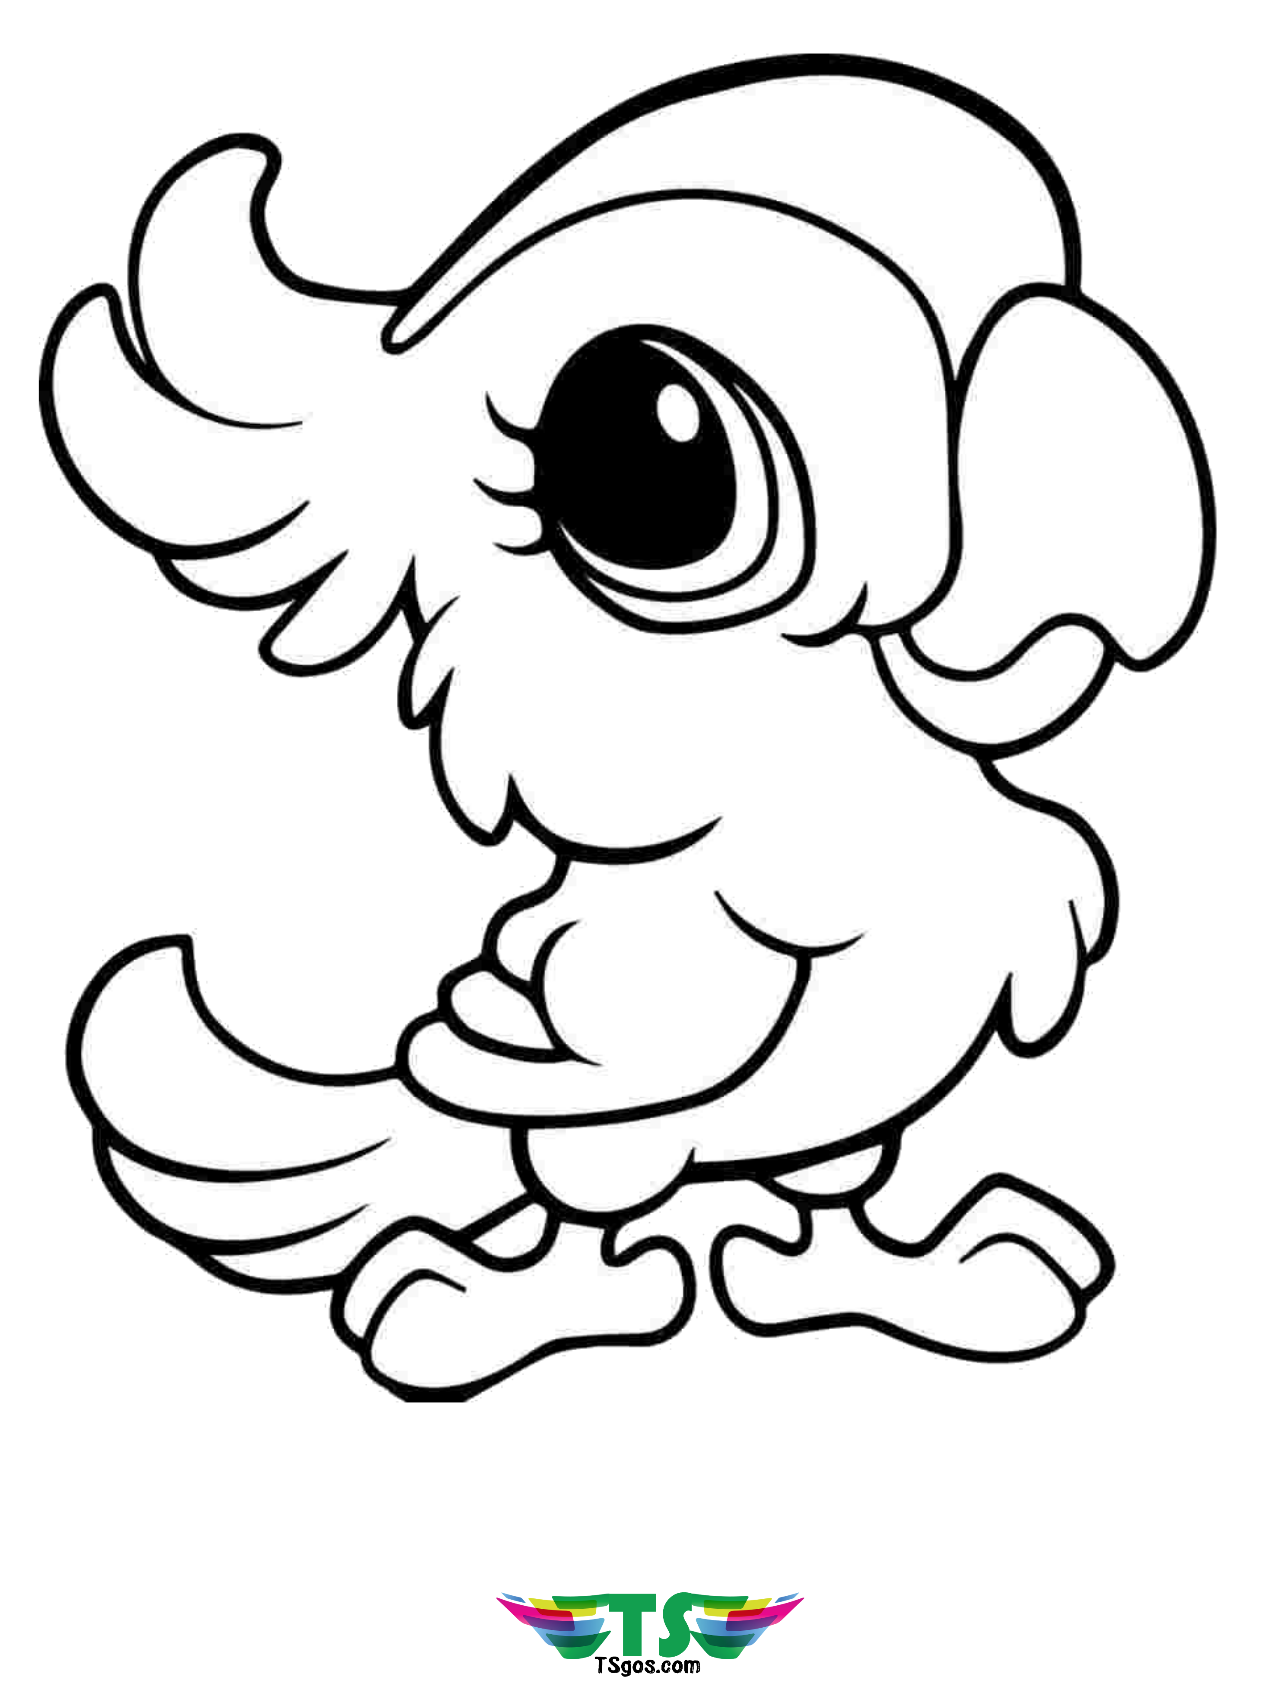 bird colouring pictures bird coloring pages colouring bird pictures